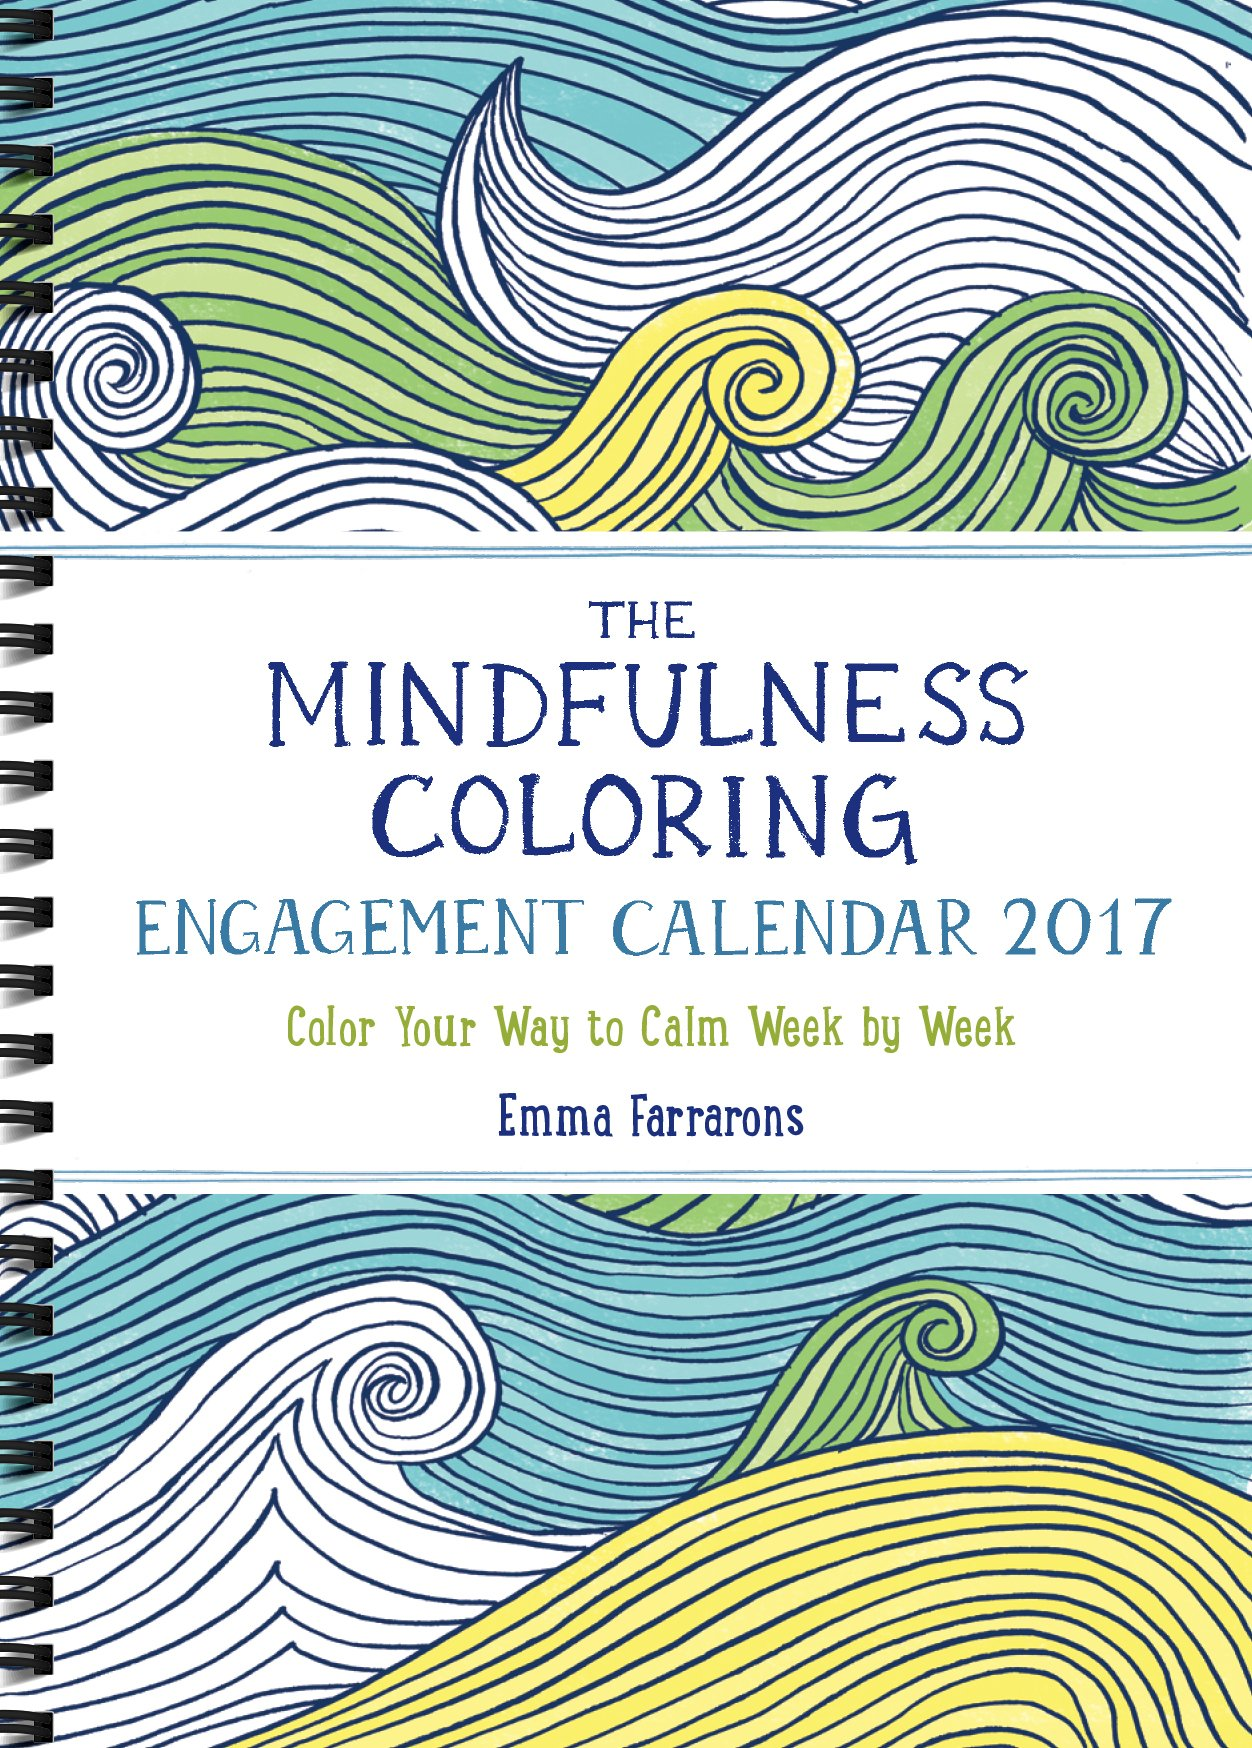 Mindfulness Coloring Engagement Calendar 2017 product image